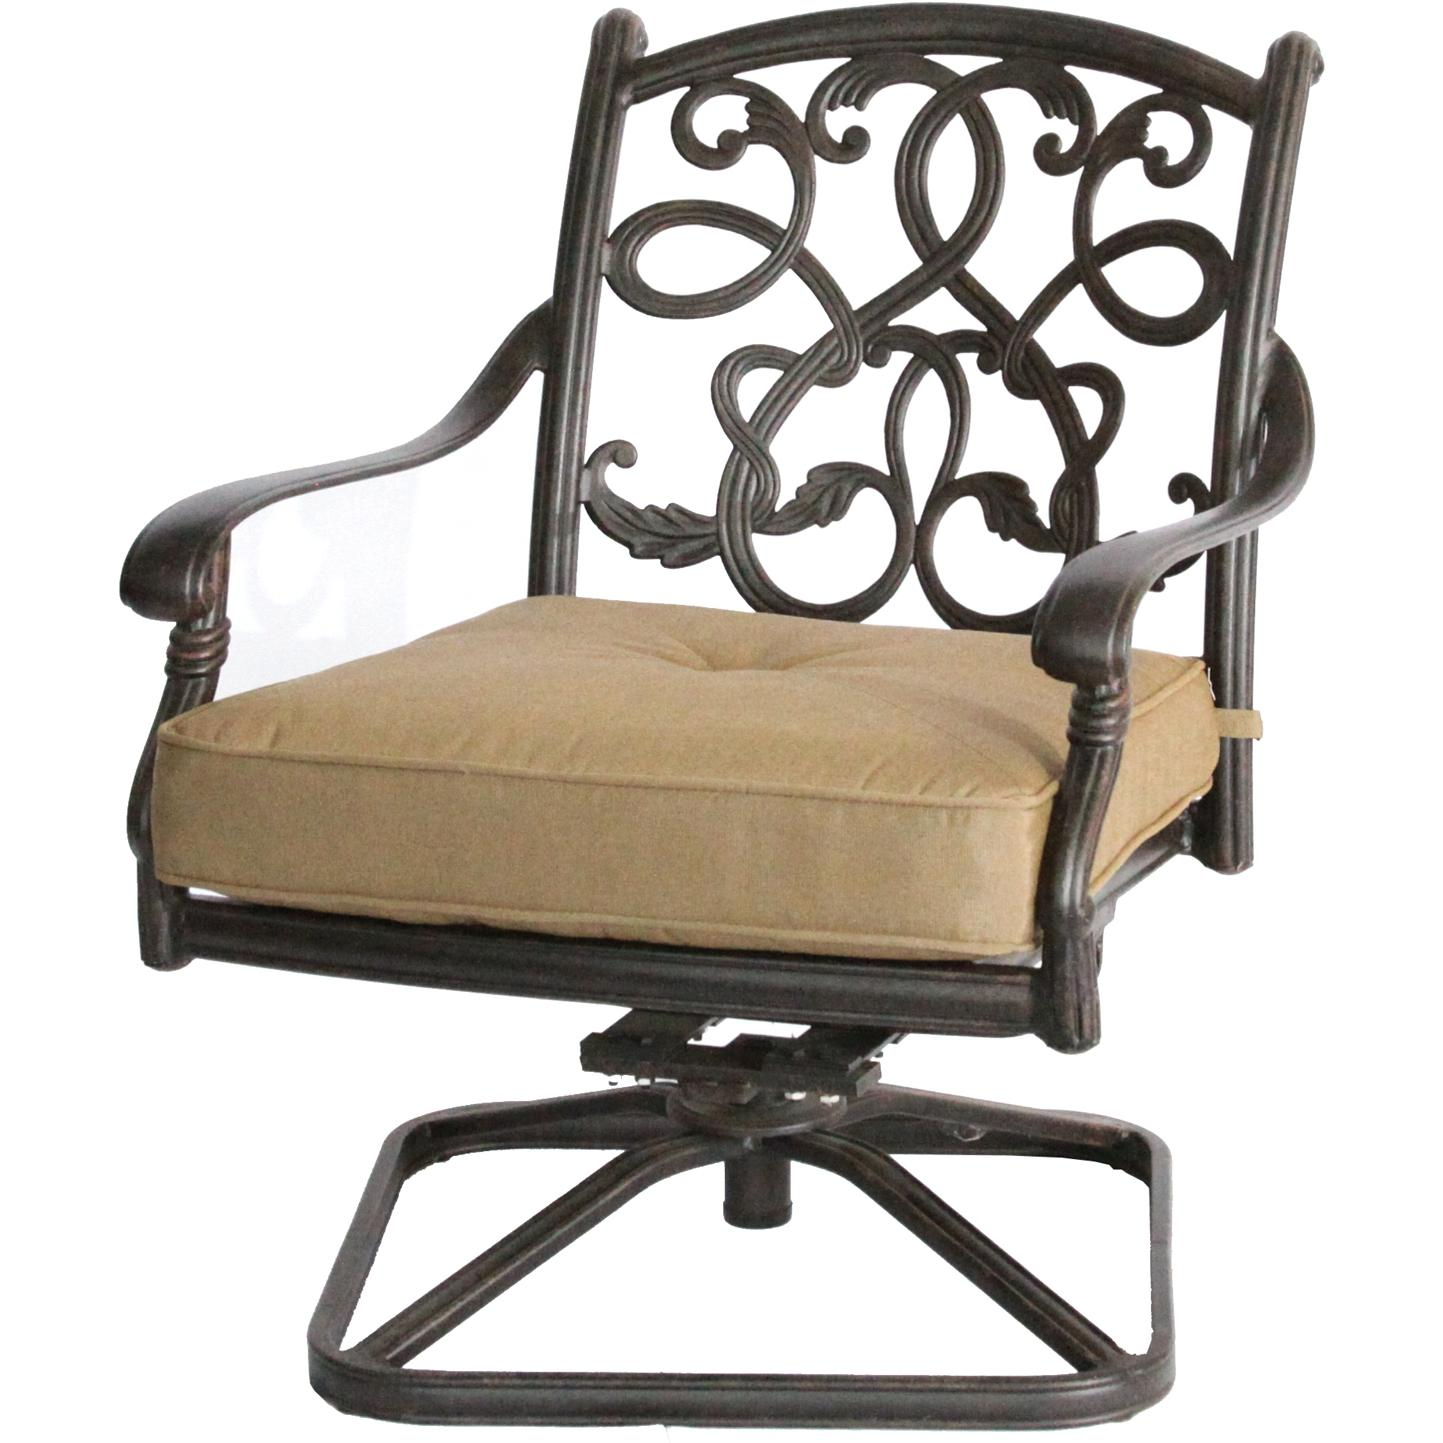 Darlee Santa Monica Cast Aluminum Outdoor Patio Swivel Rocker Club Chair With Cushions - Antique Bronze